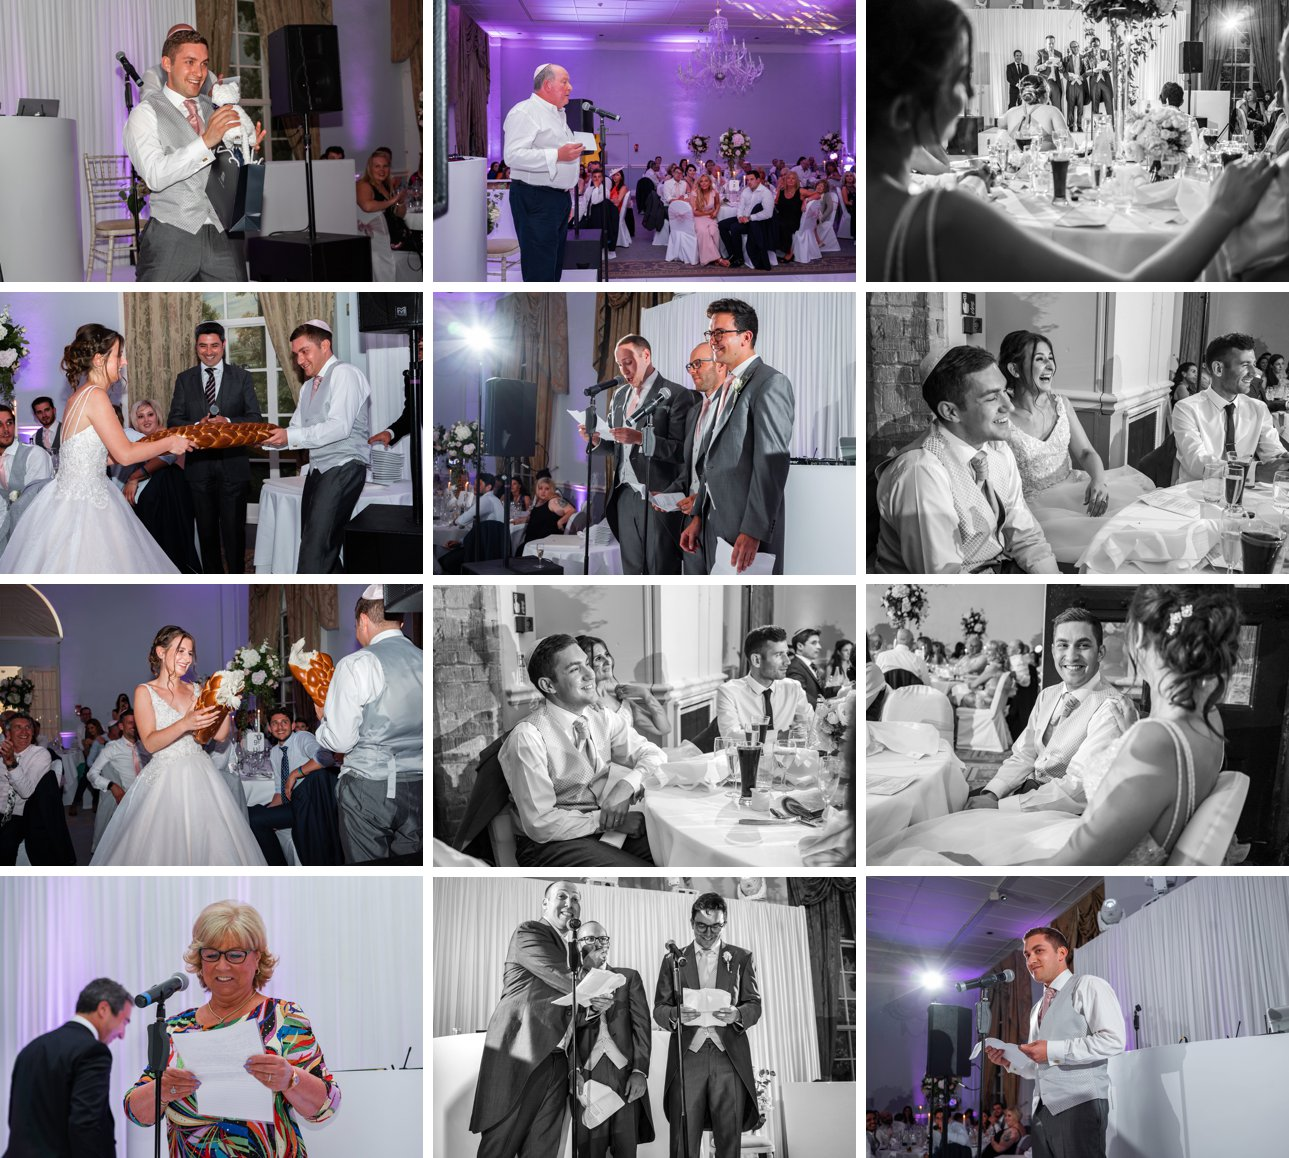 Speeches and fun wedding games at a Stapleford Park wedding.